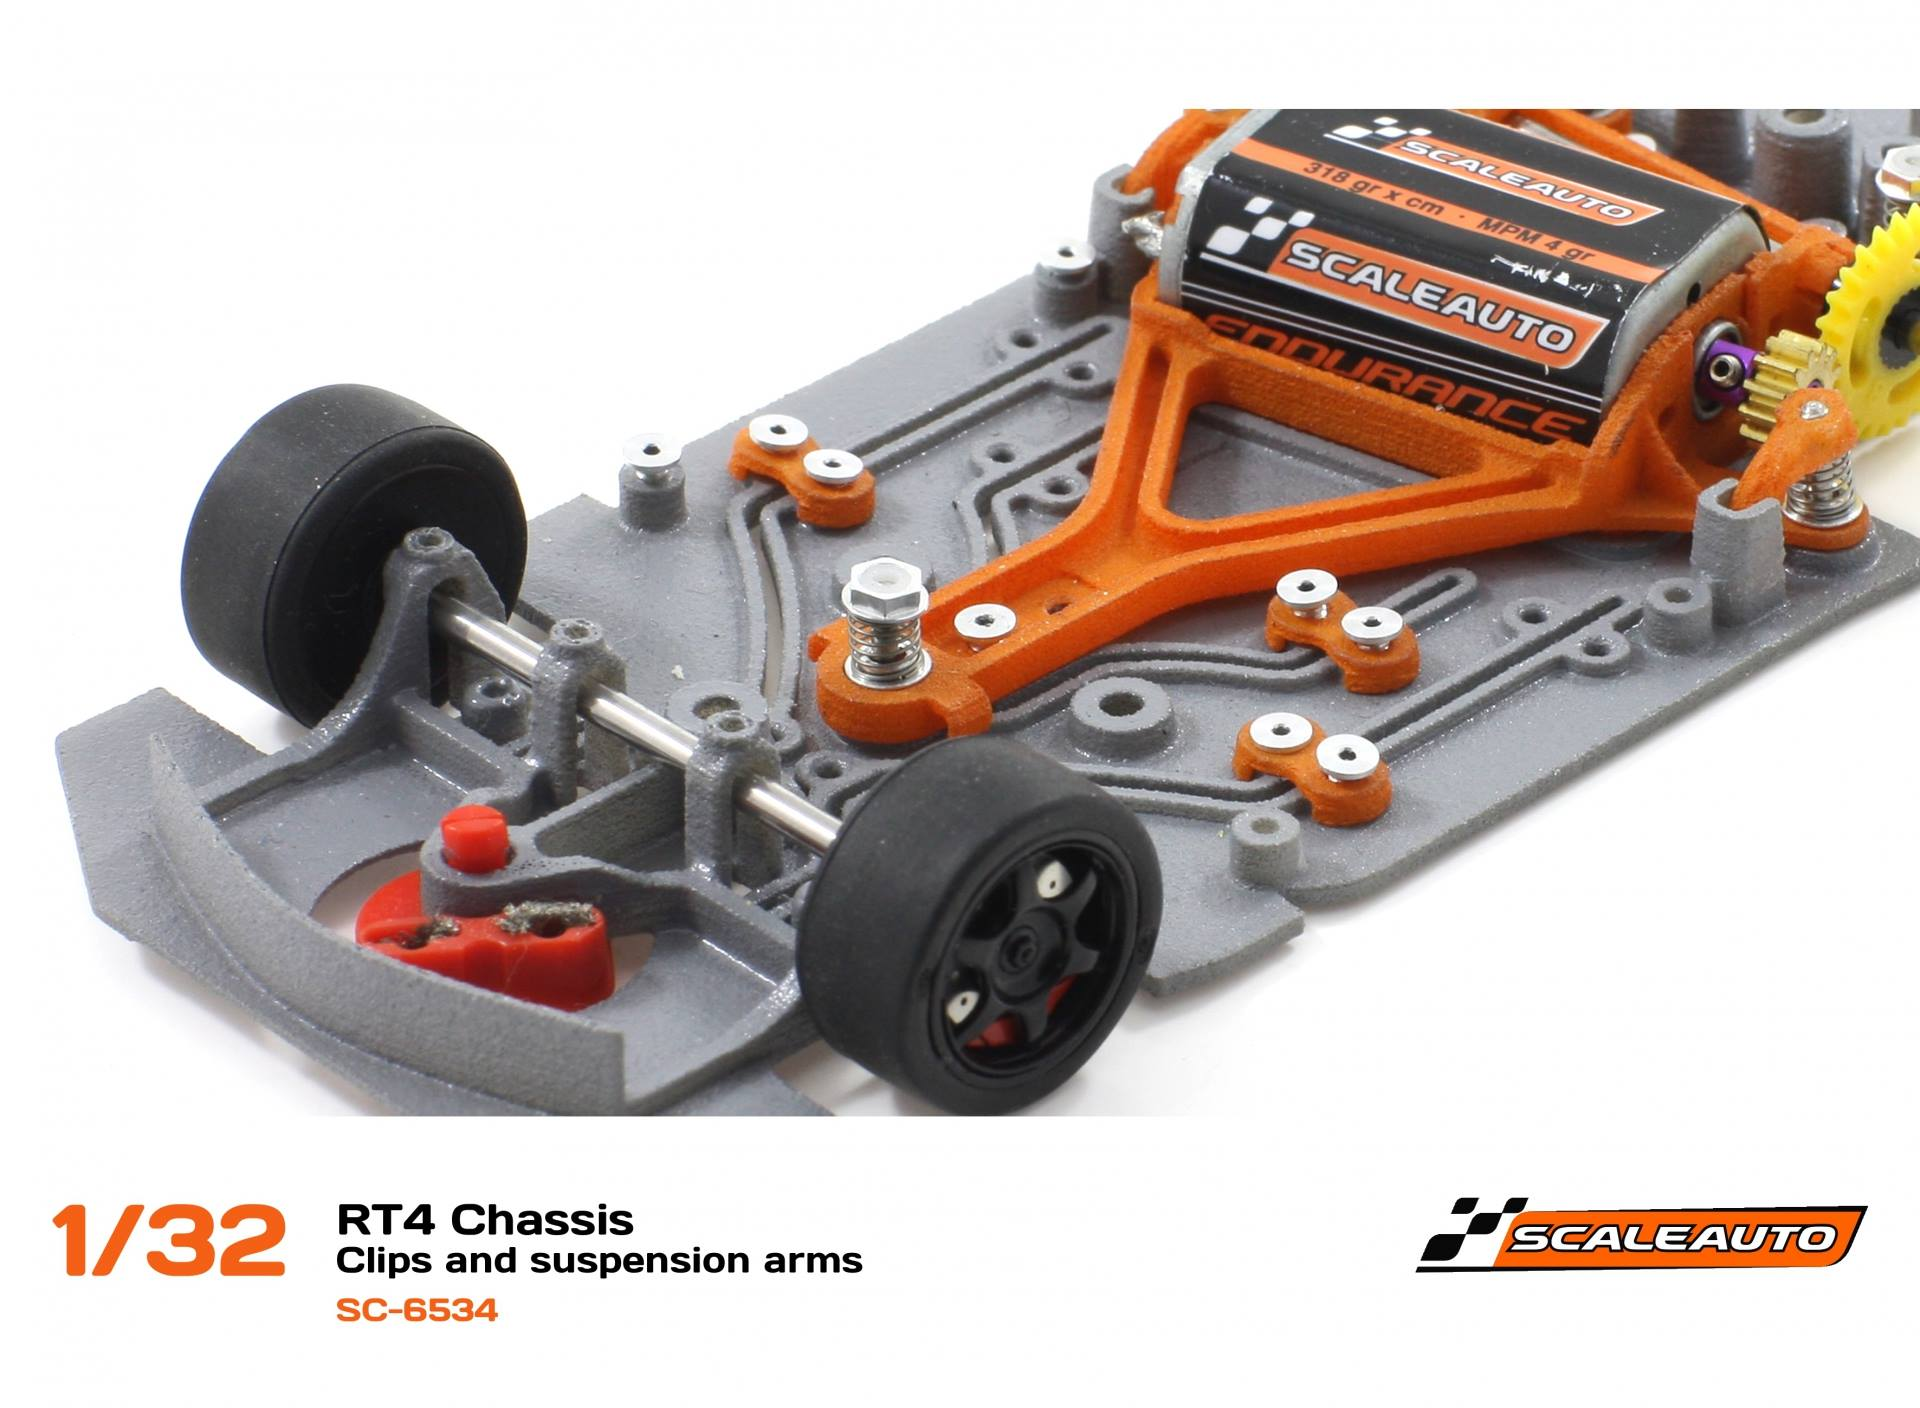 Scaleauto: les chassis Double In-Flex bientôt disponibles